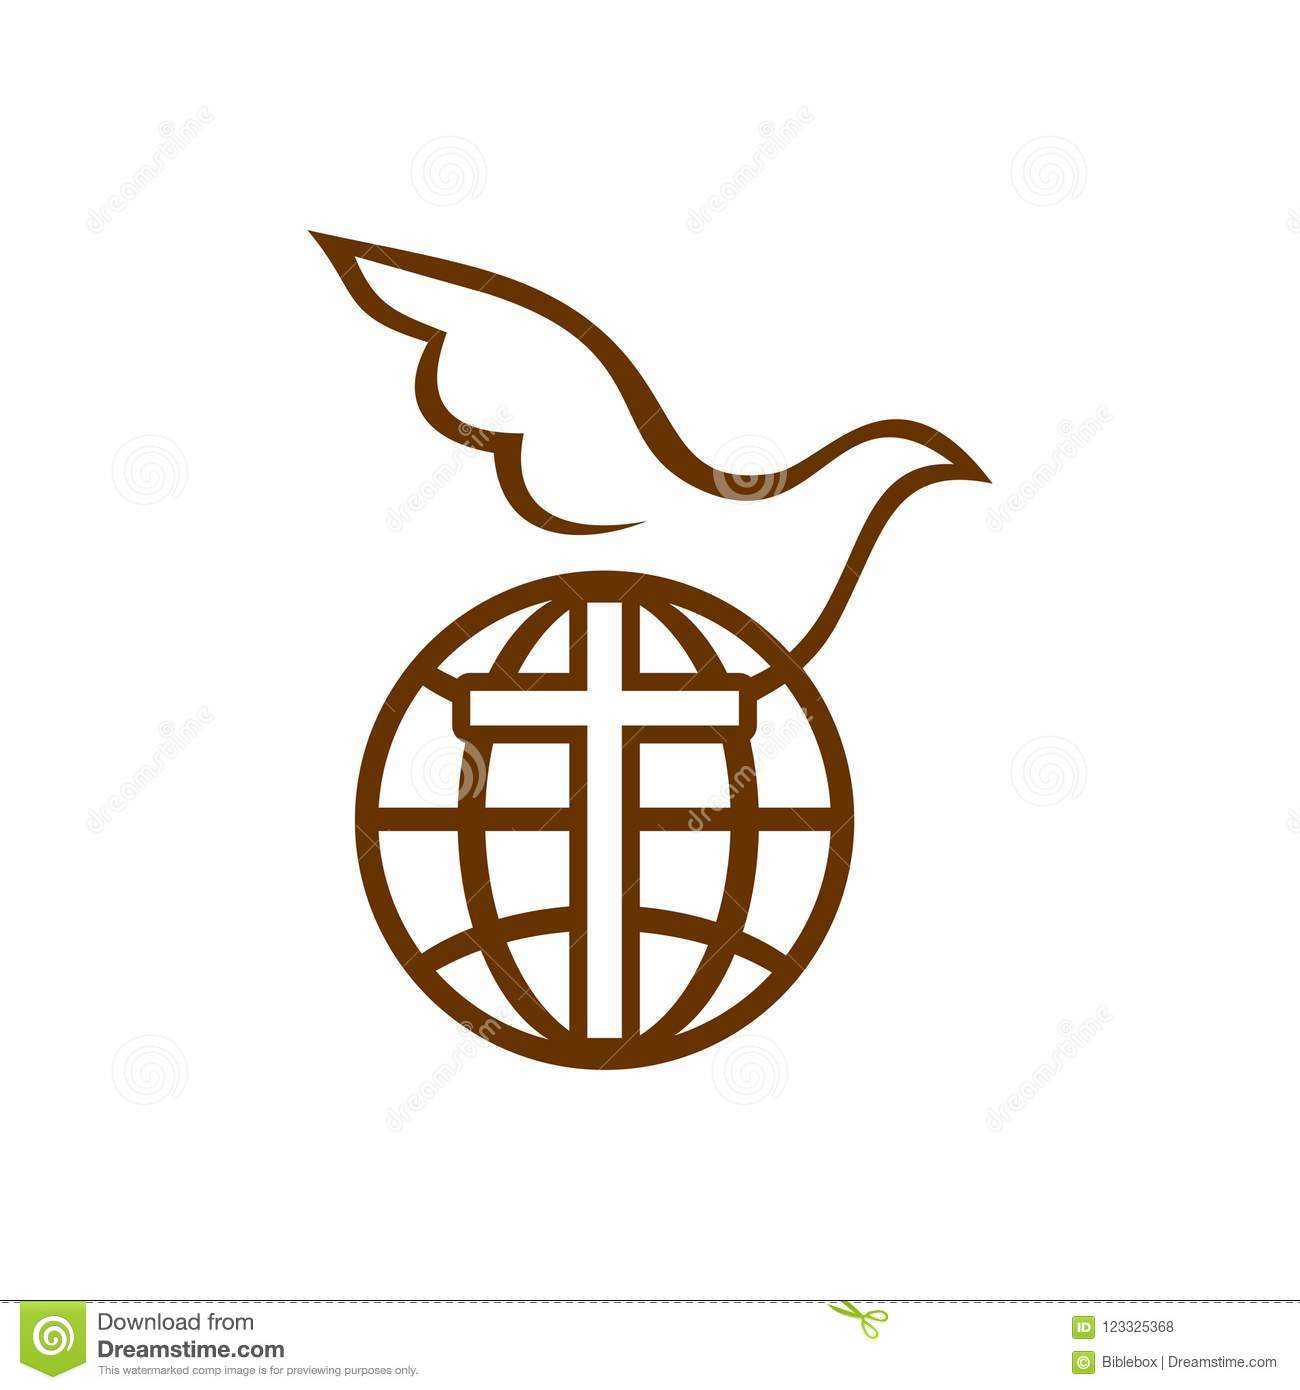 Church logo the cross of jesus the dove and the globe stock vector download church logo the cross of jesus the dove and the globe stock vector thecheapjerseys Gallery